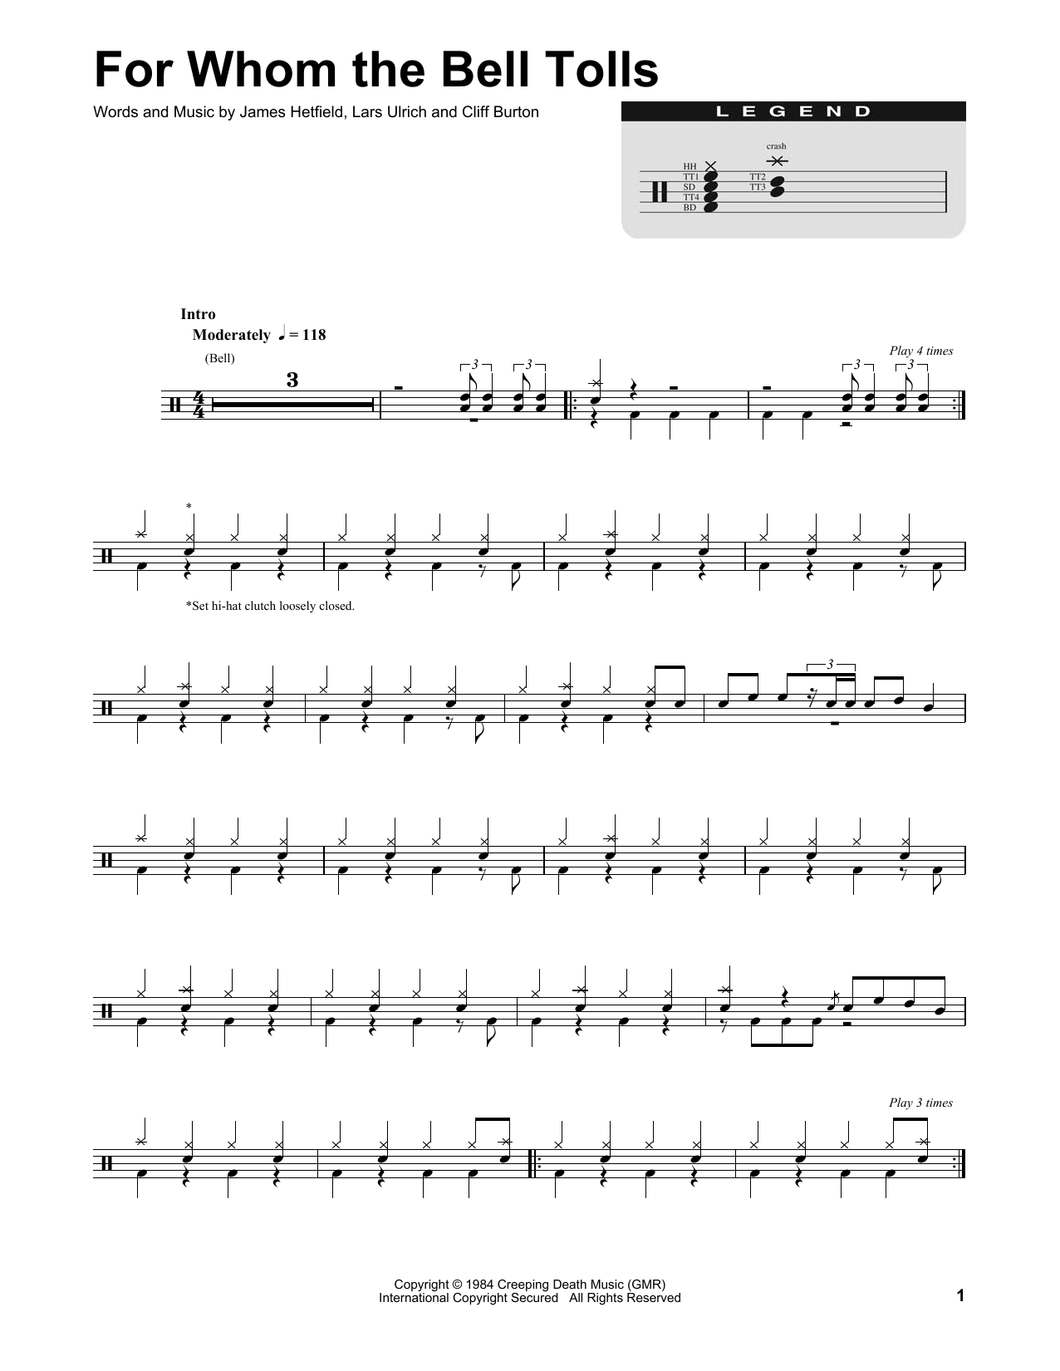 For Whom The Bell Tolls - Metallica - Full Drum Transcription / Drum Sheet Music - SheetMusicDirect DT